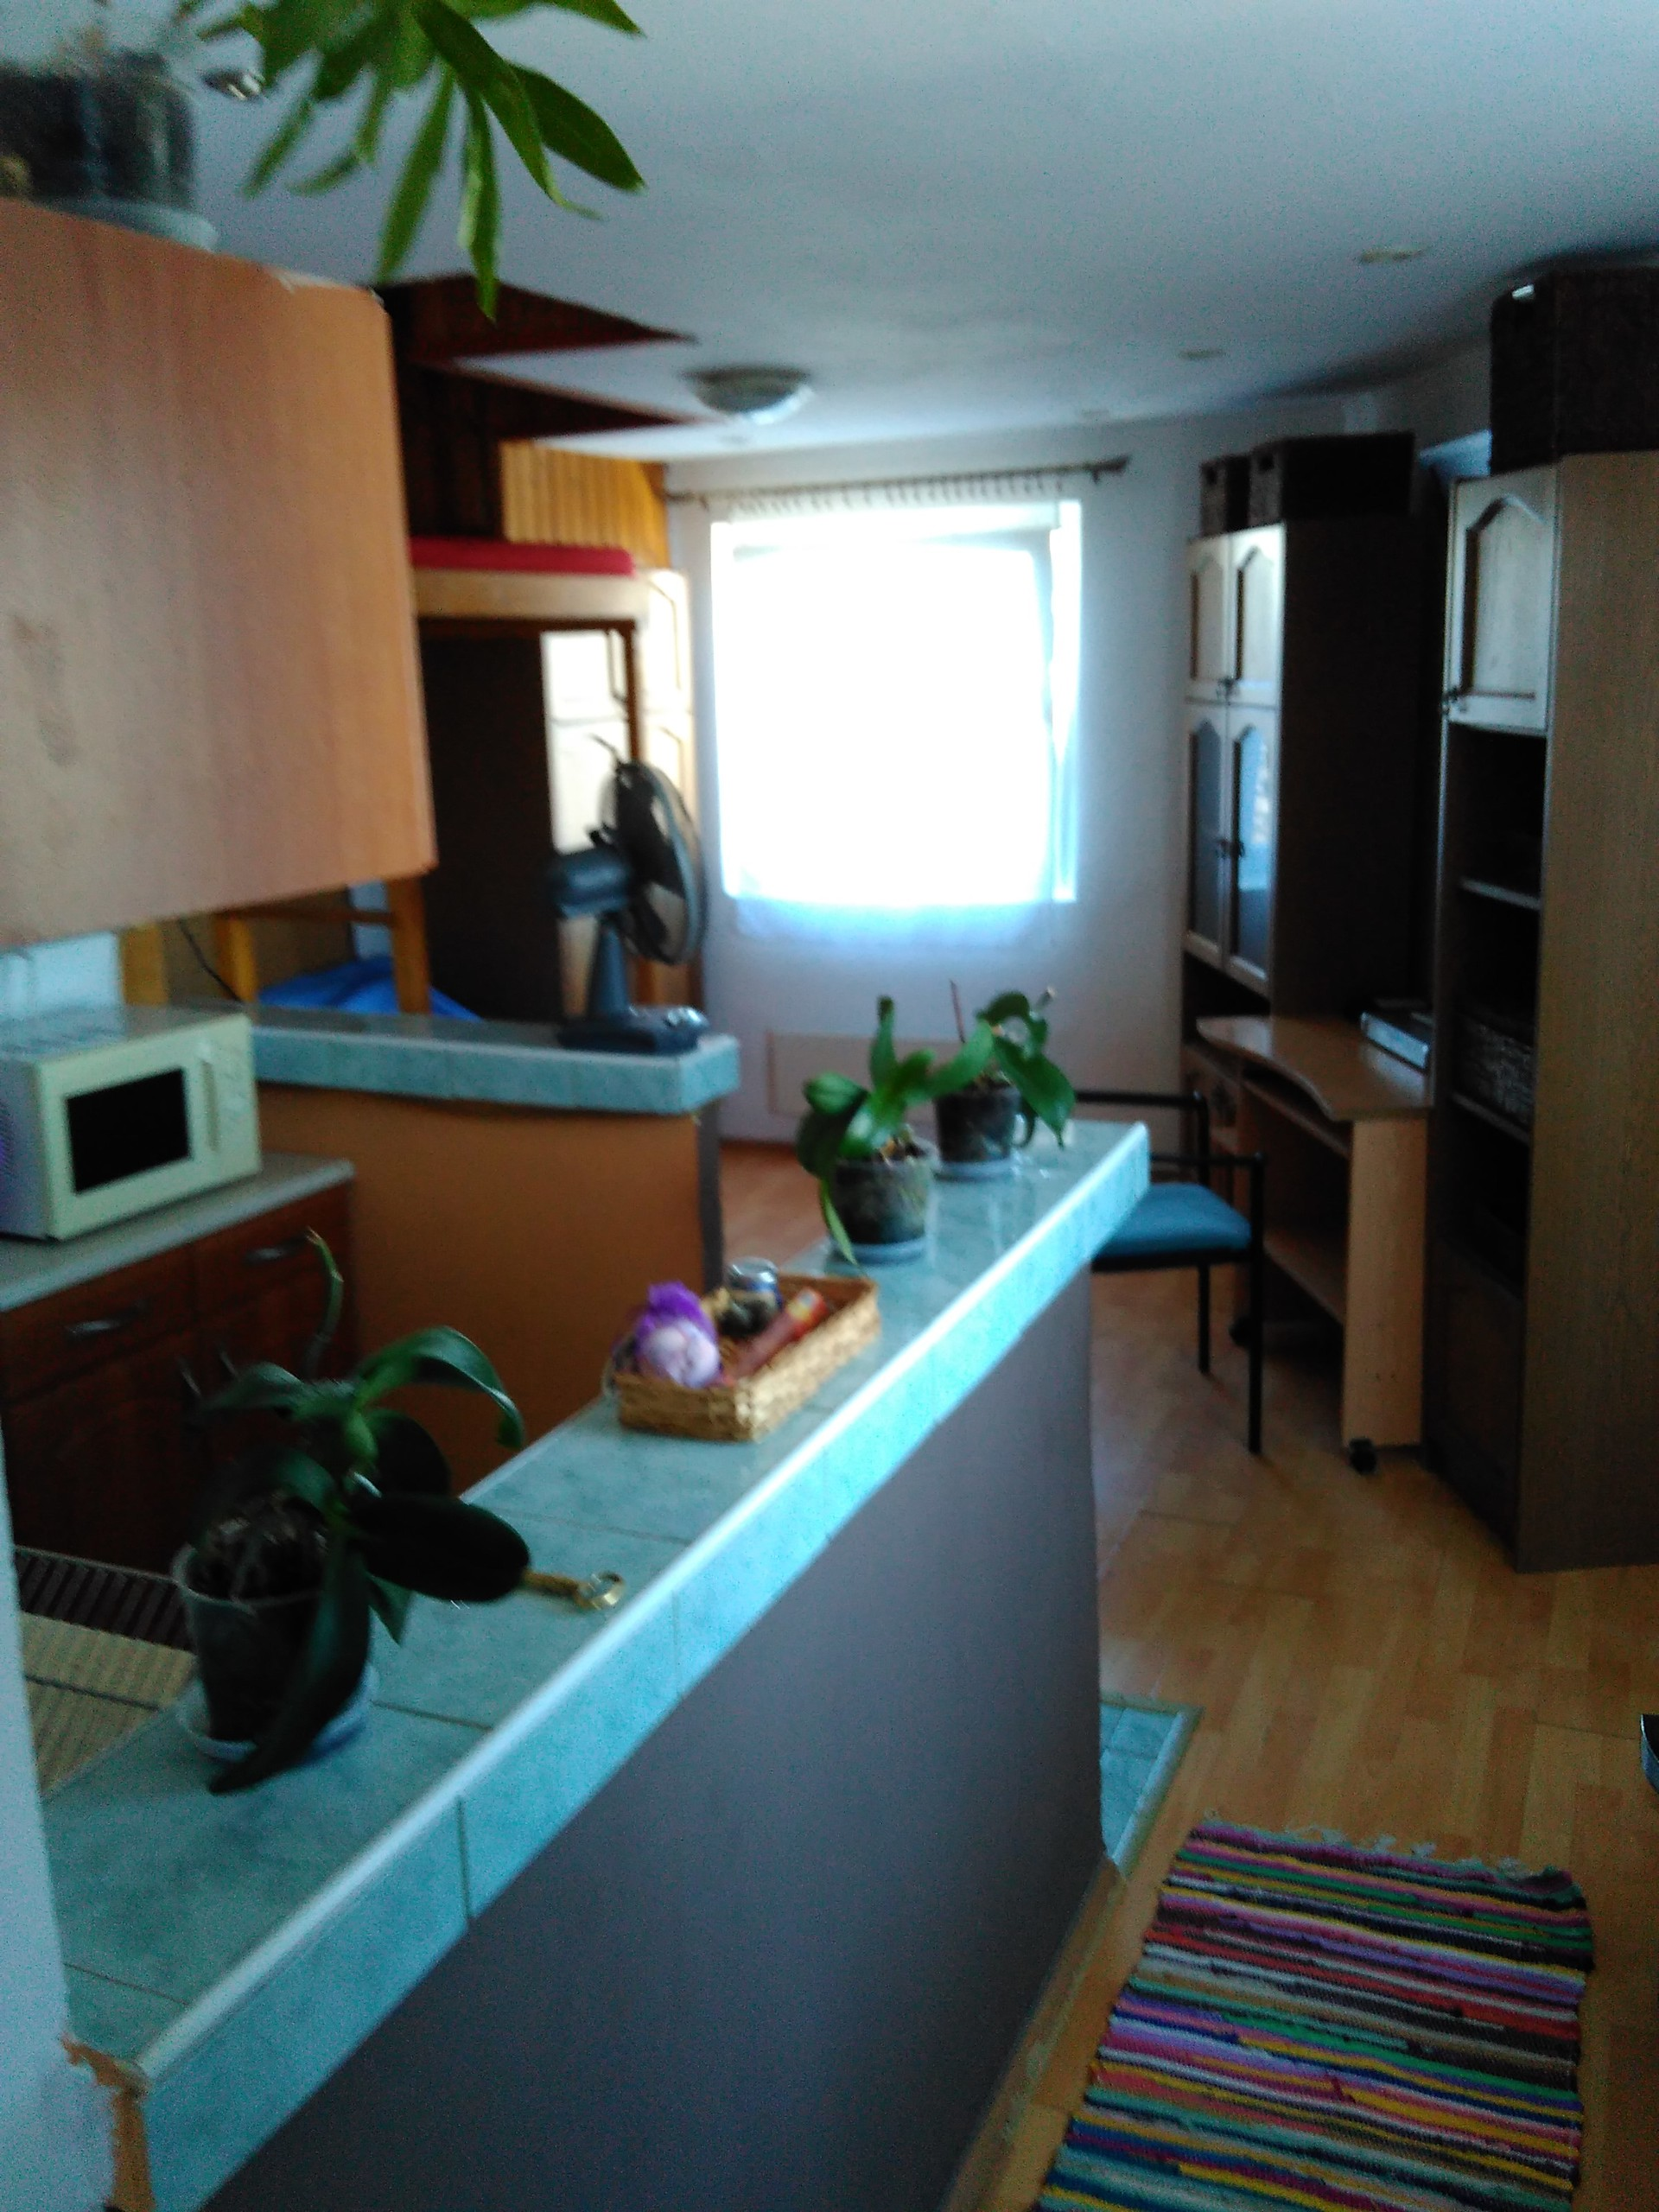 ... Studio Apartment To Rent In Budapest 8th District From 15 August ...